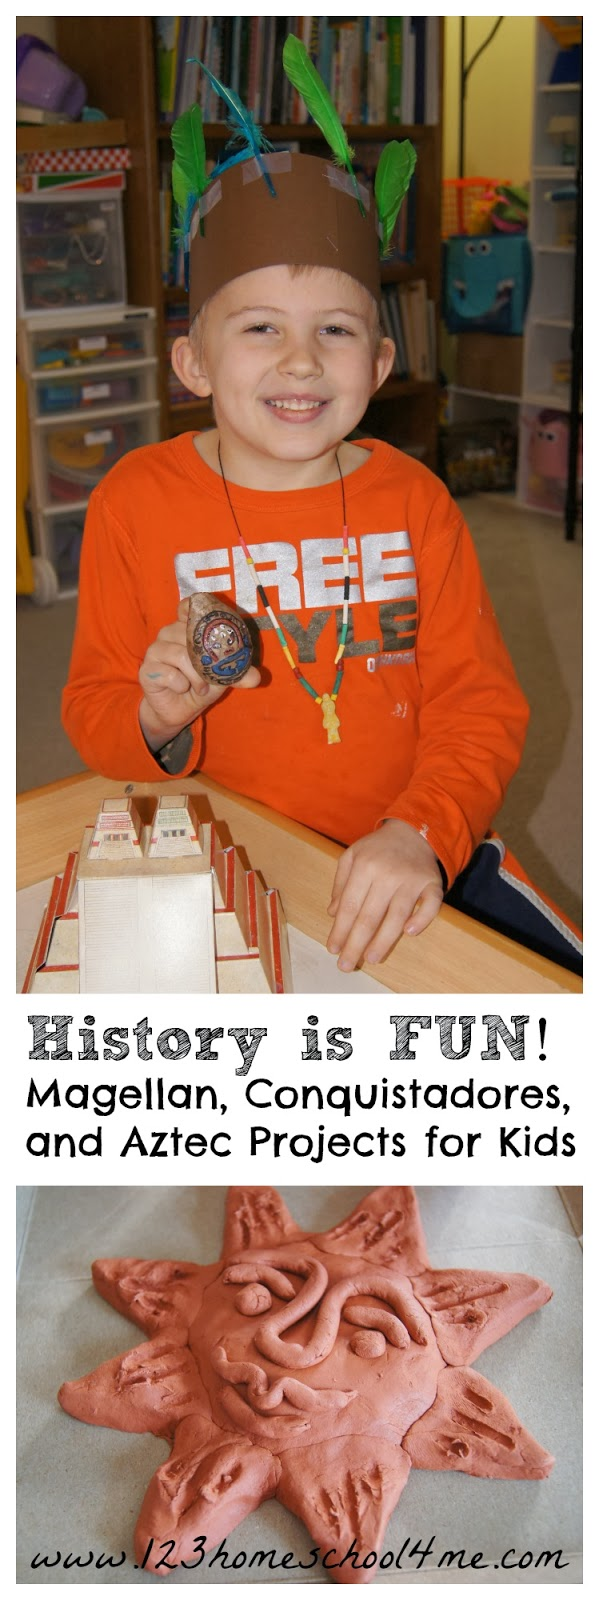 Homeschool History Lesson - Early Explorers Magellan, Conquistadors, and Aztec Projects for Kids